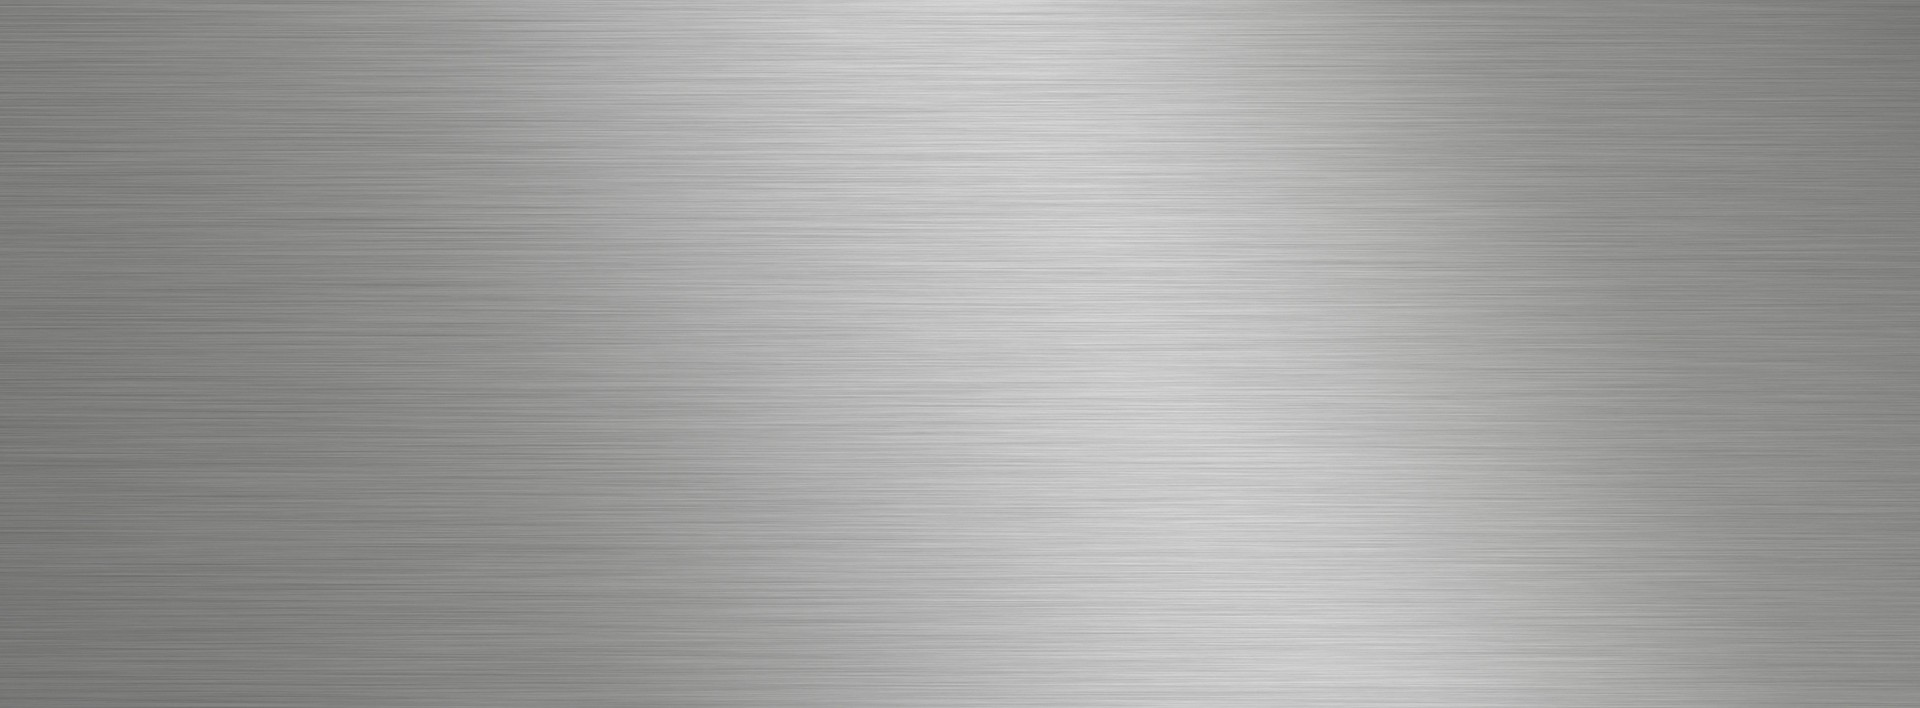 BBQ GRILL 304 STAINLESS STEEL BACKDROP